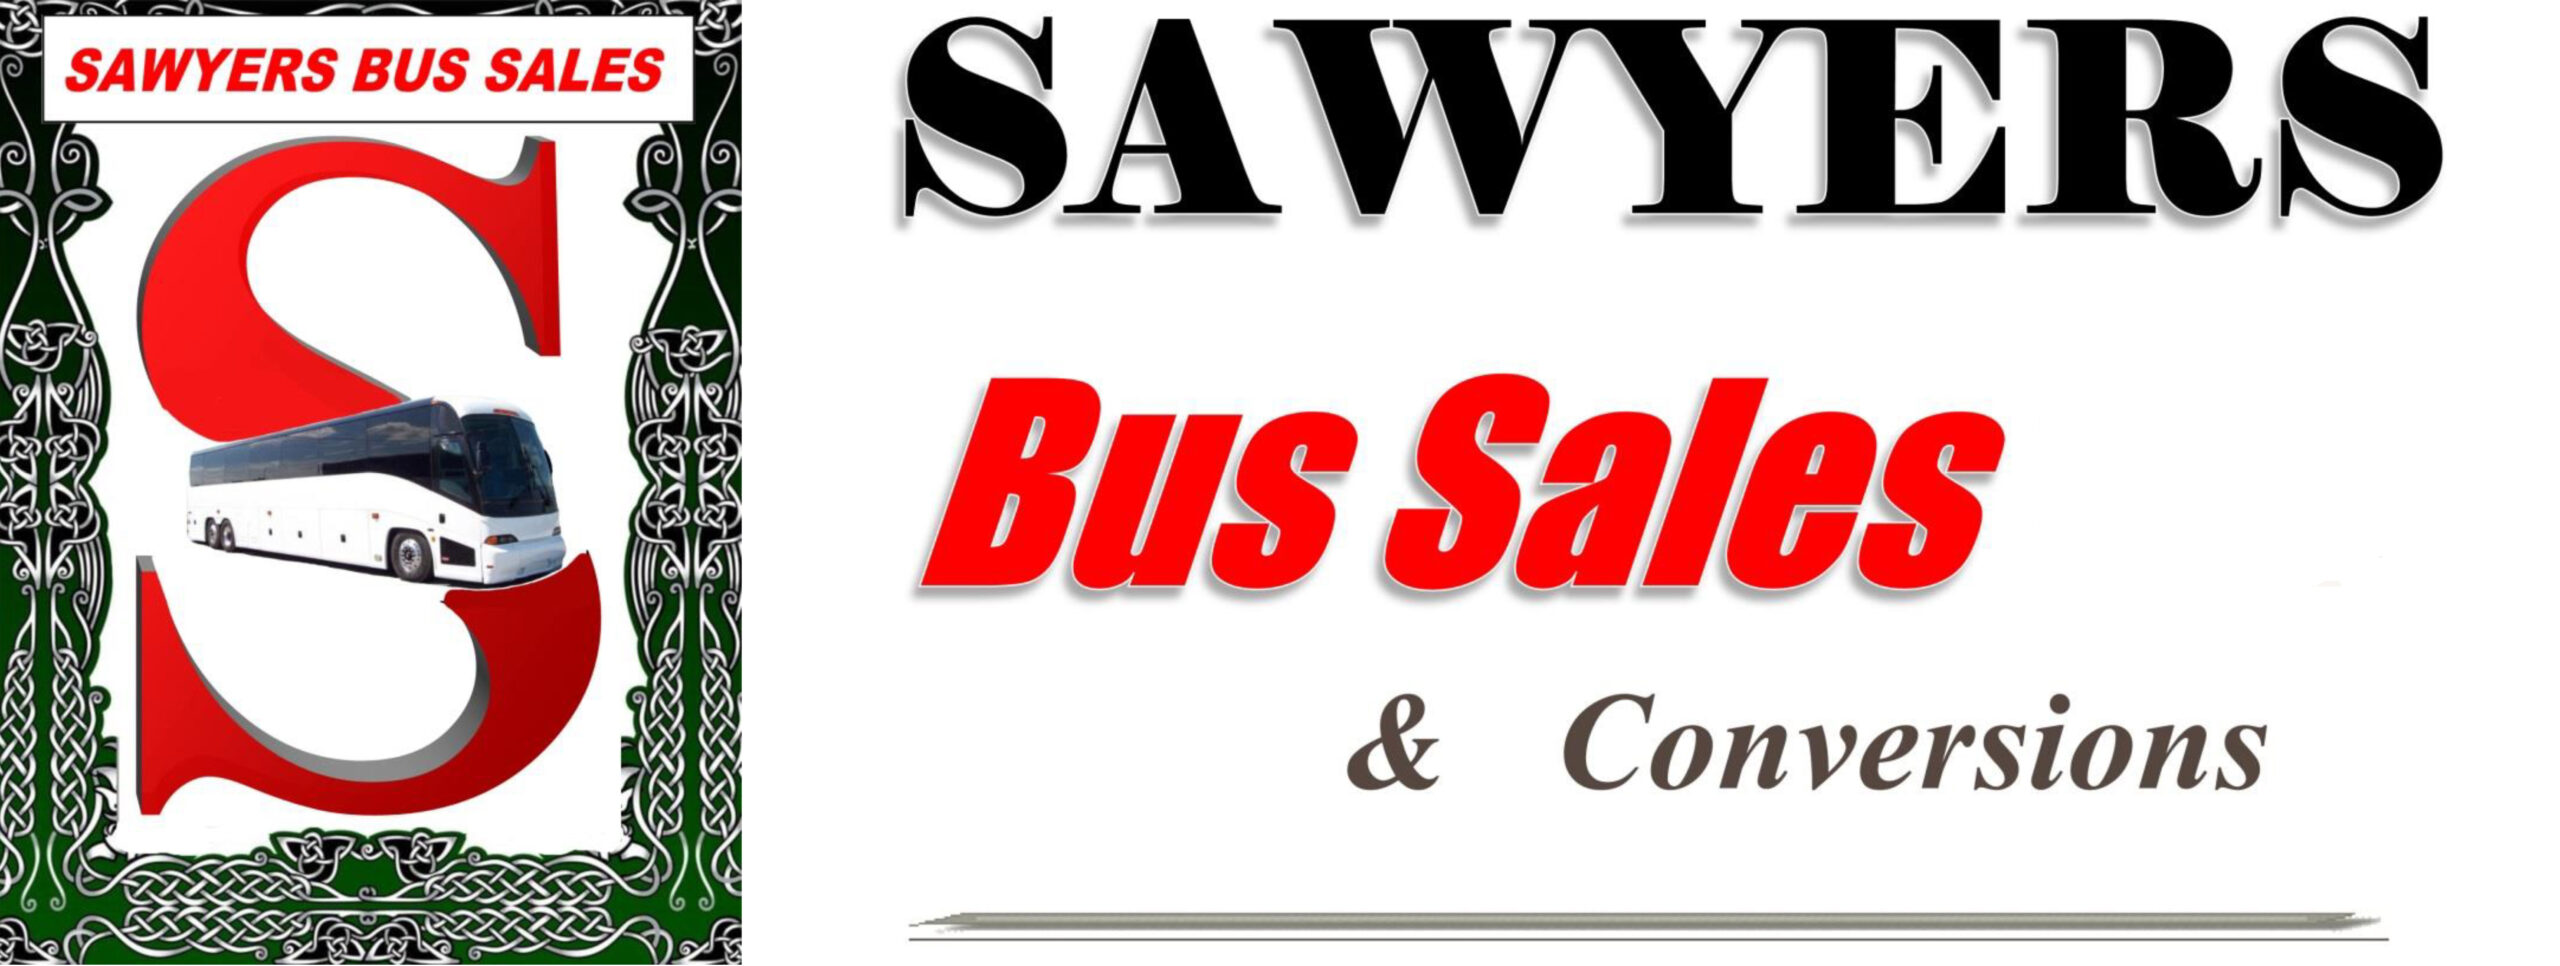 Sawyers Bus Sales & Conversions